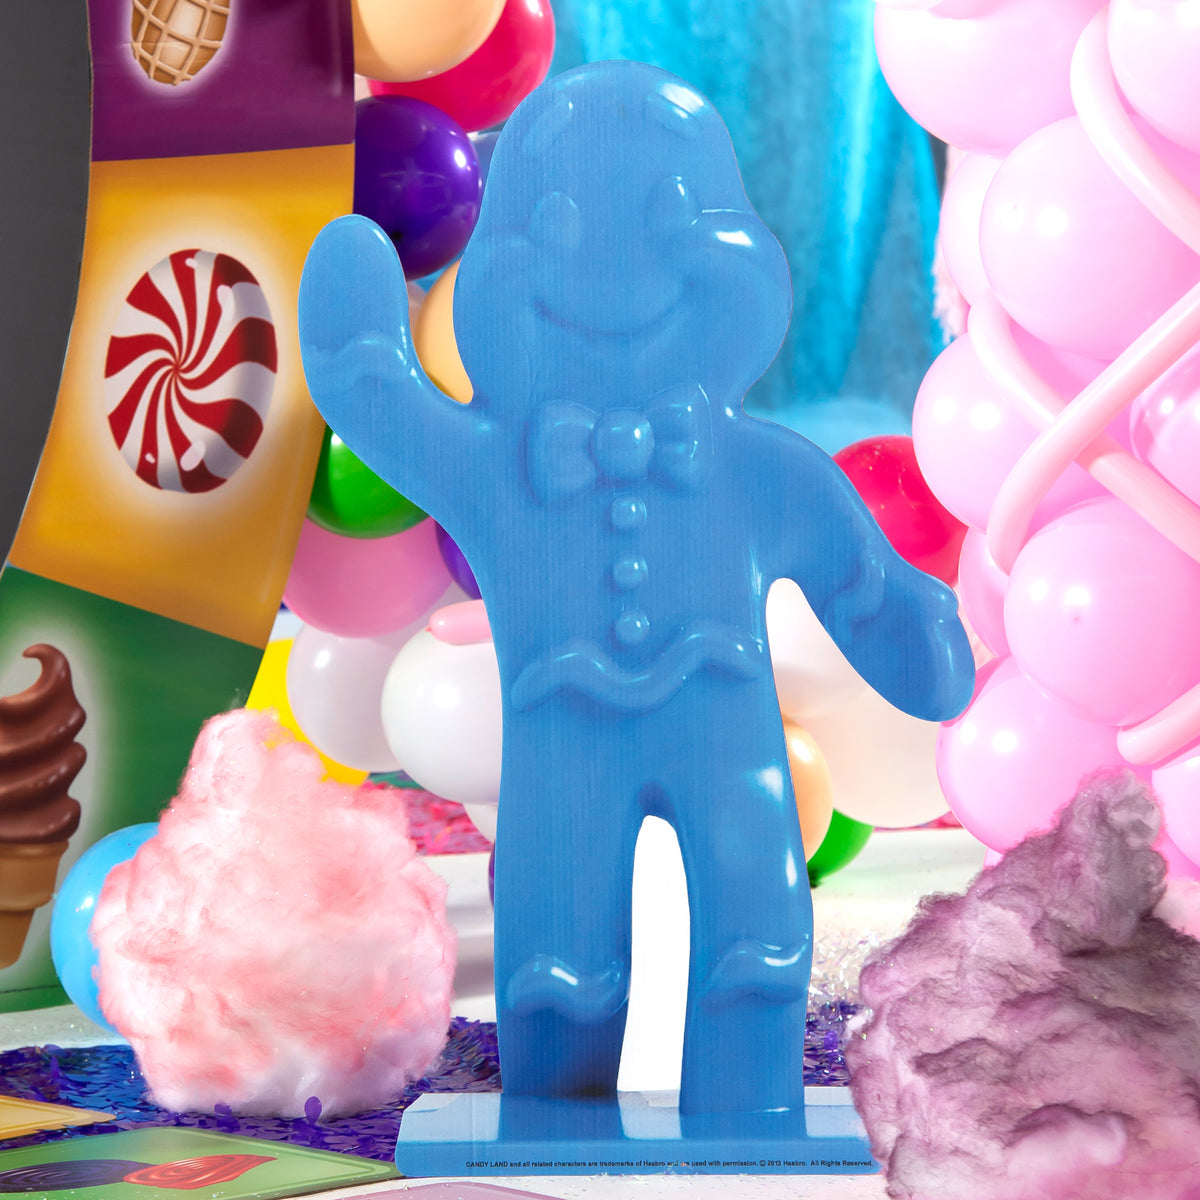 3 ft. 8 in. Candy Land Gingerbread Piece Standees